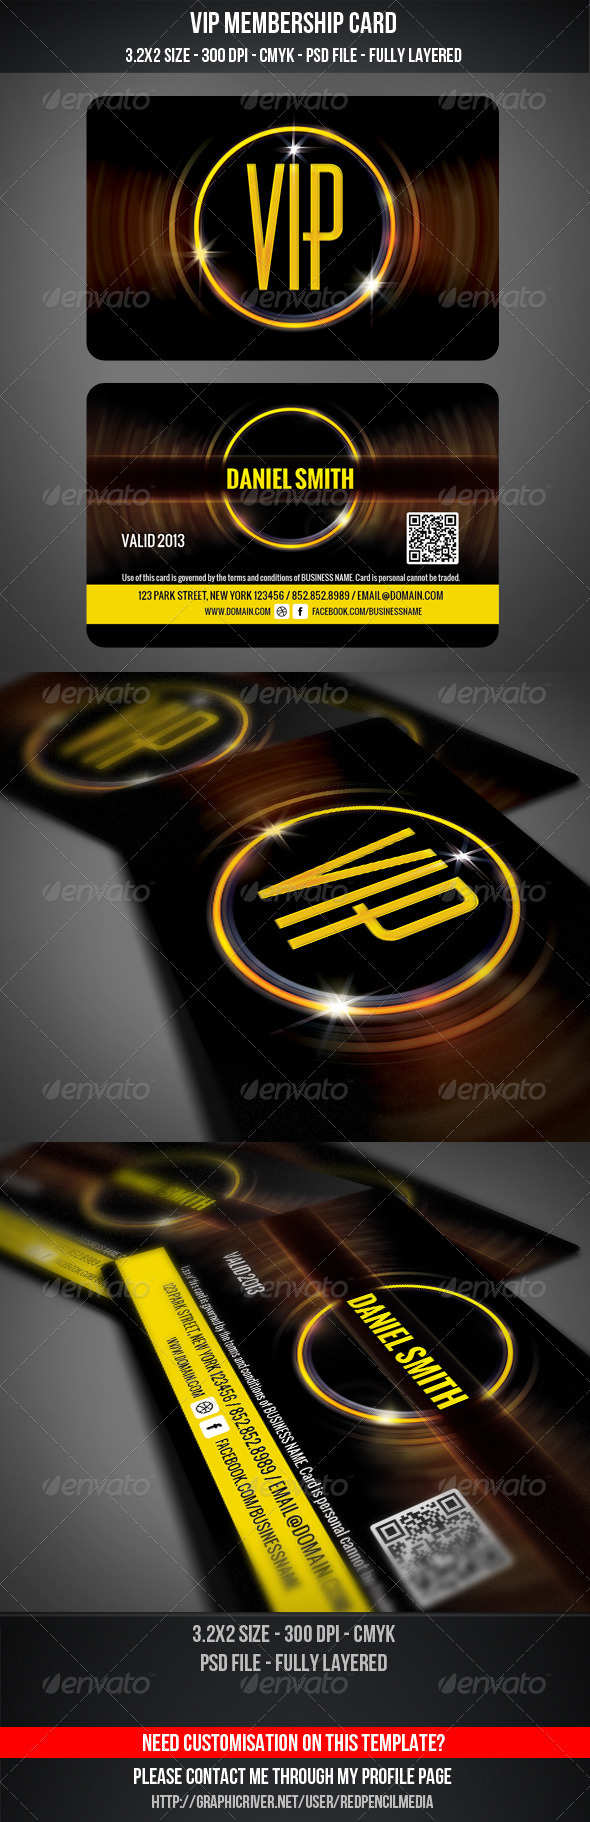 GraphicRiver VIP Membership Card 3362542